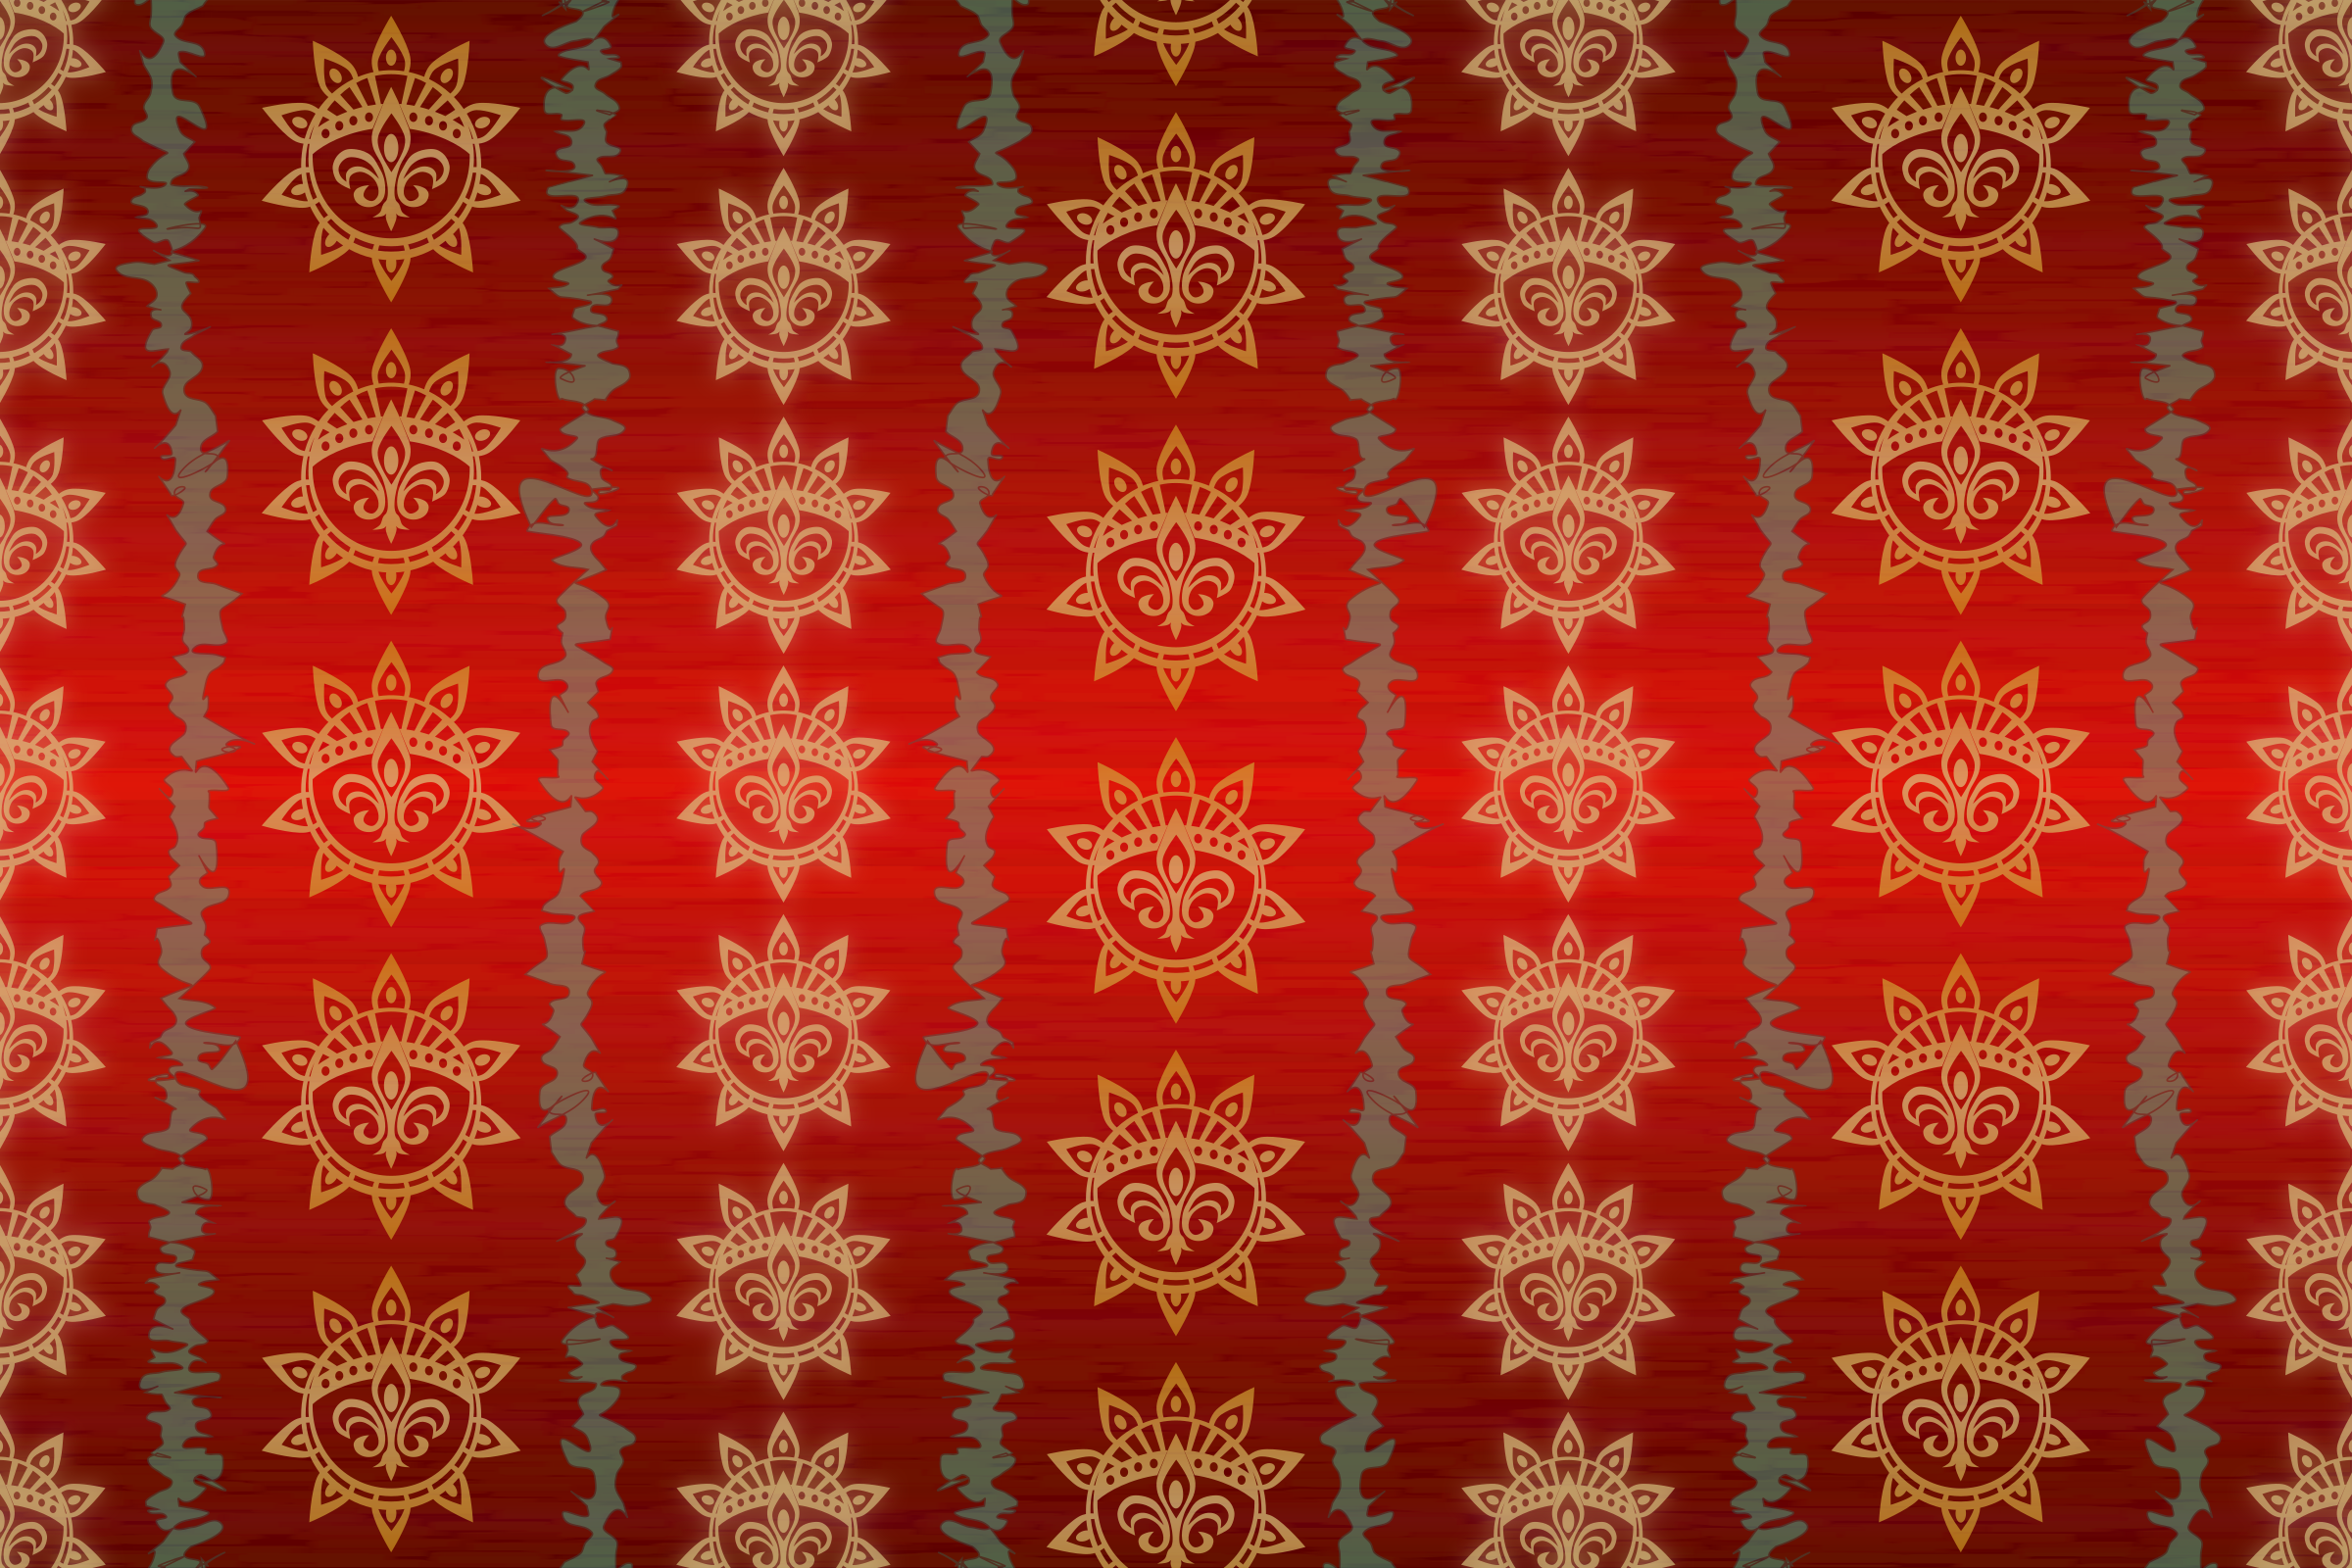 Background Patterns - Crimson by Viscious-Speed